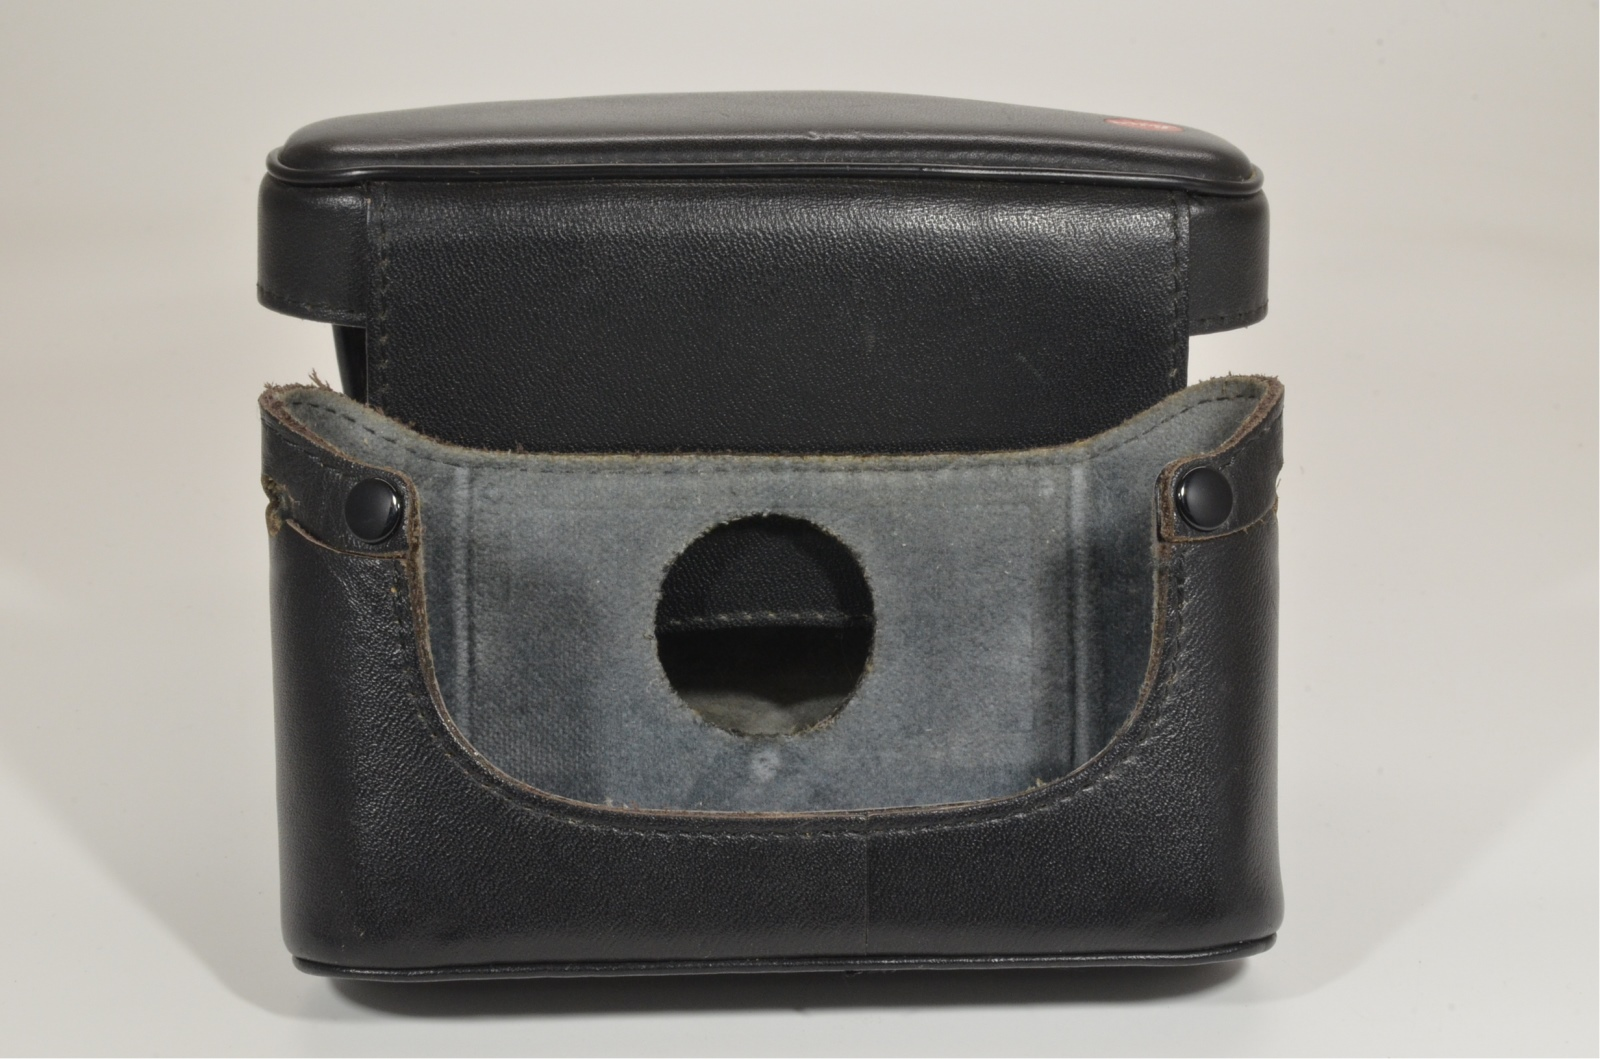 leica m6 0.72 black rangefinder serial no.1785965 year 1990 with case